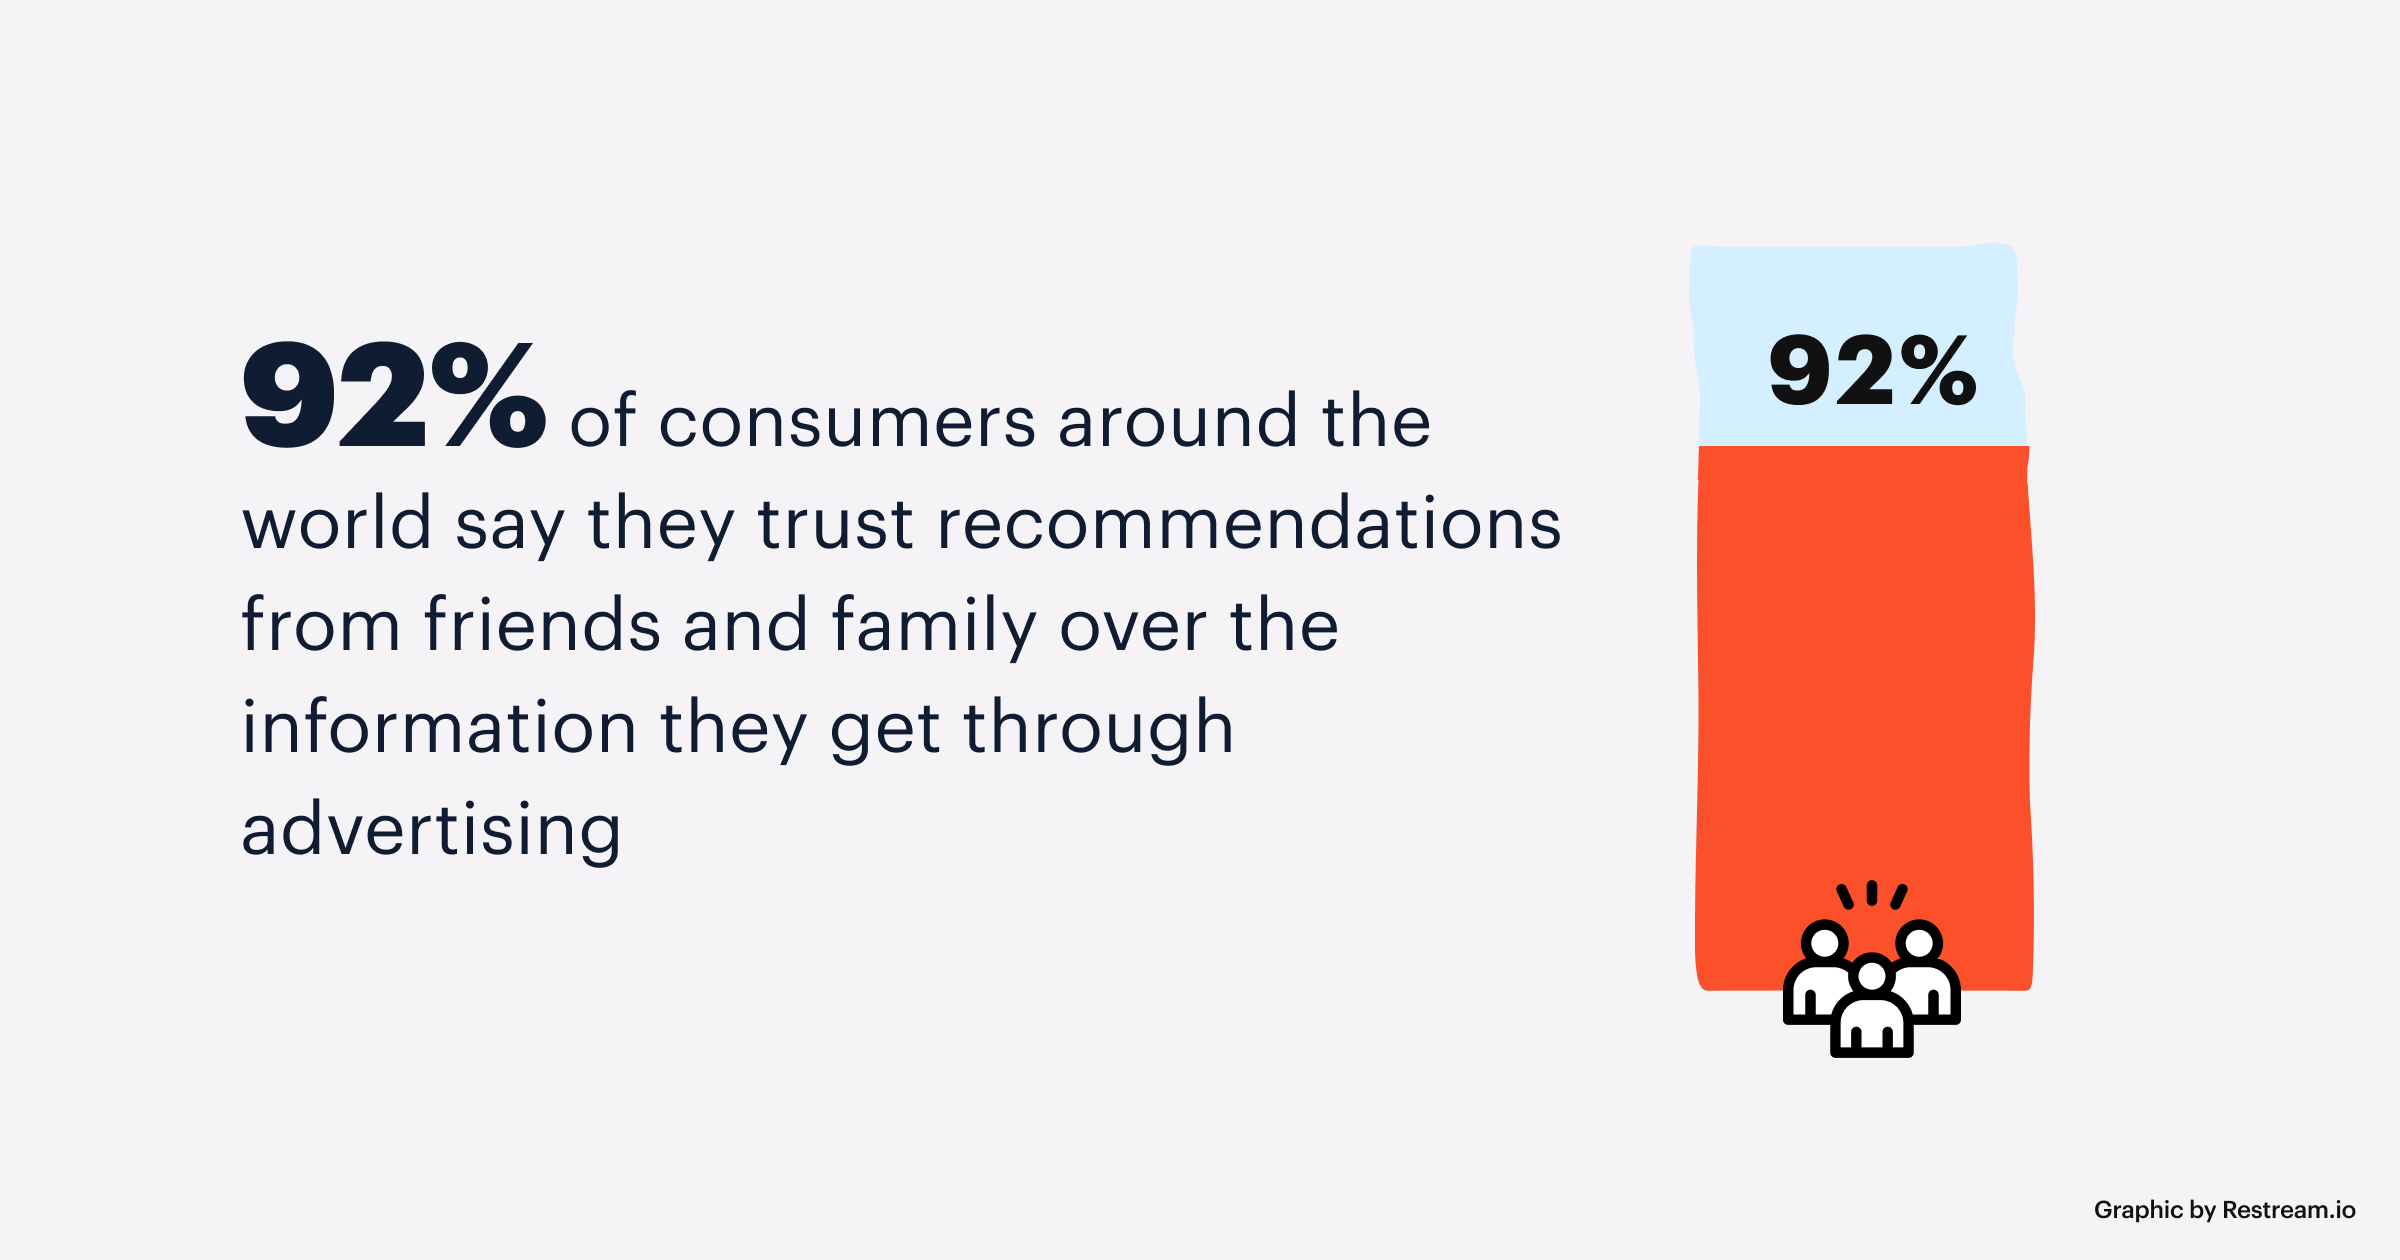 92 % of consumers around the world trust recommendations from friends and family